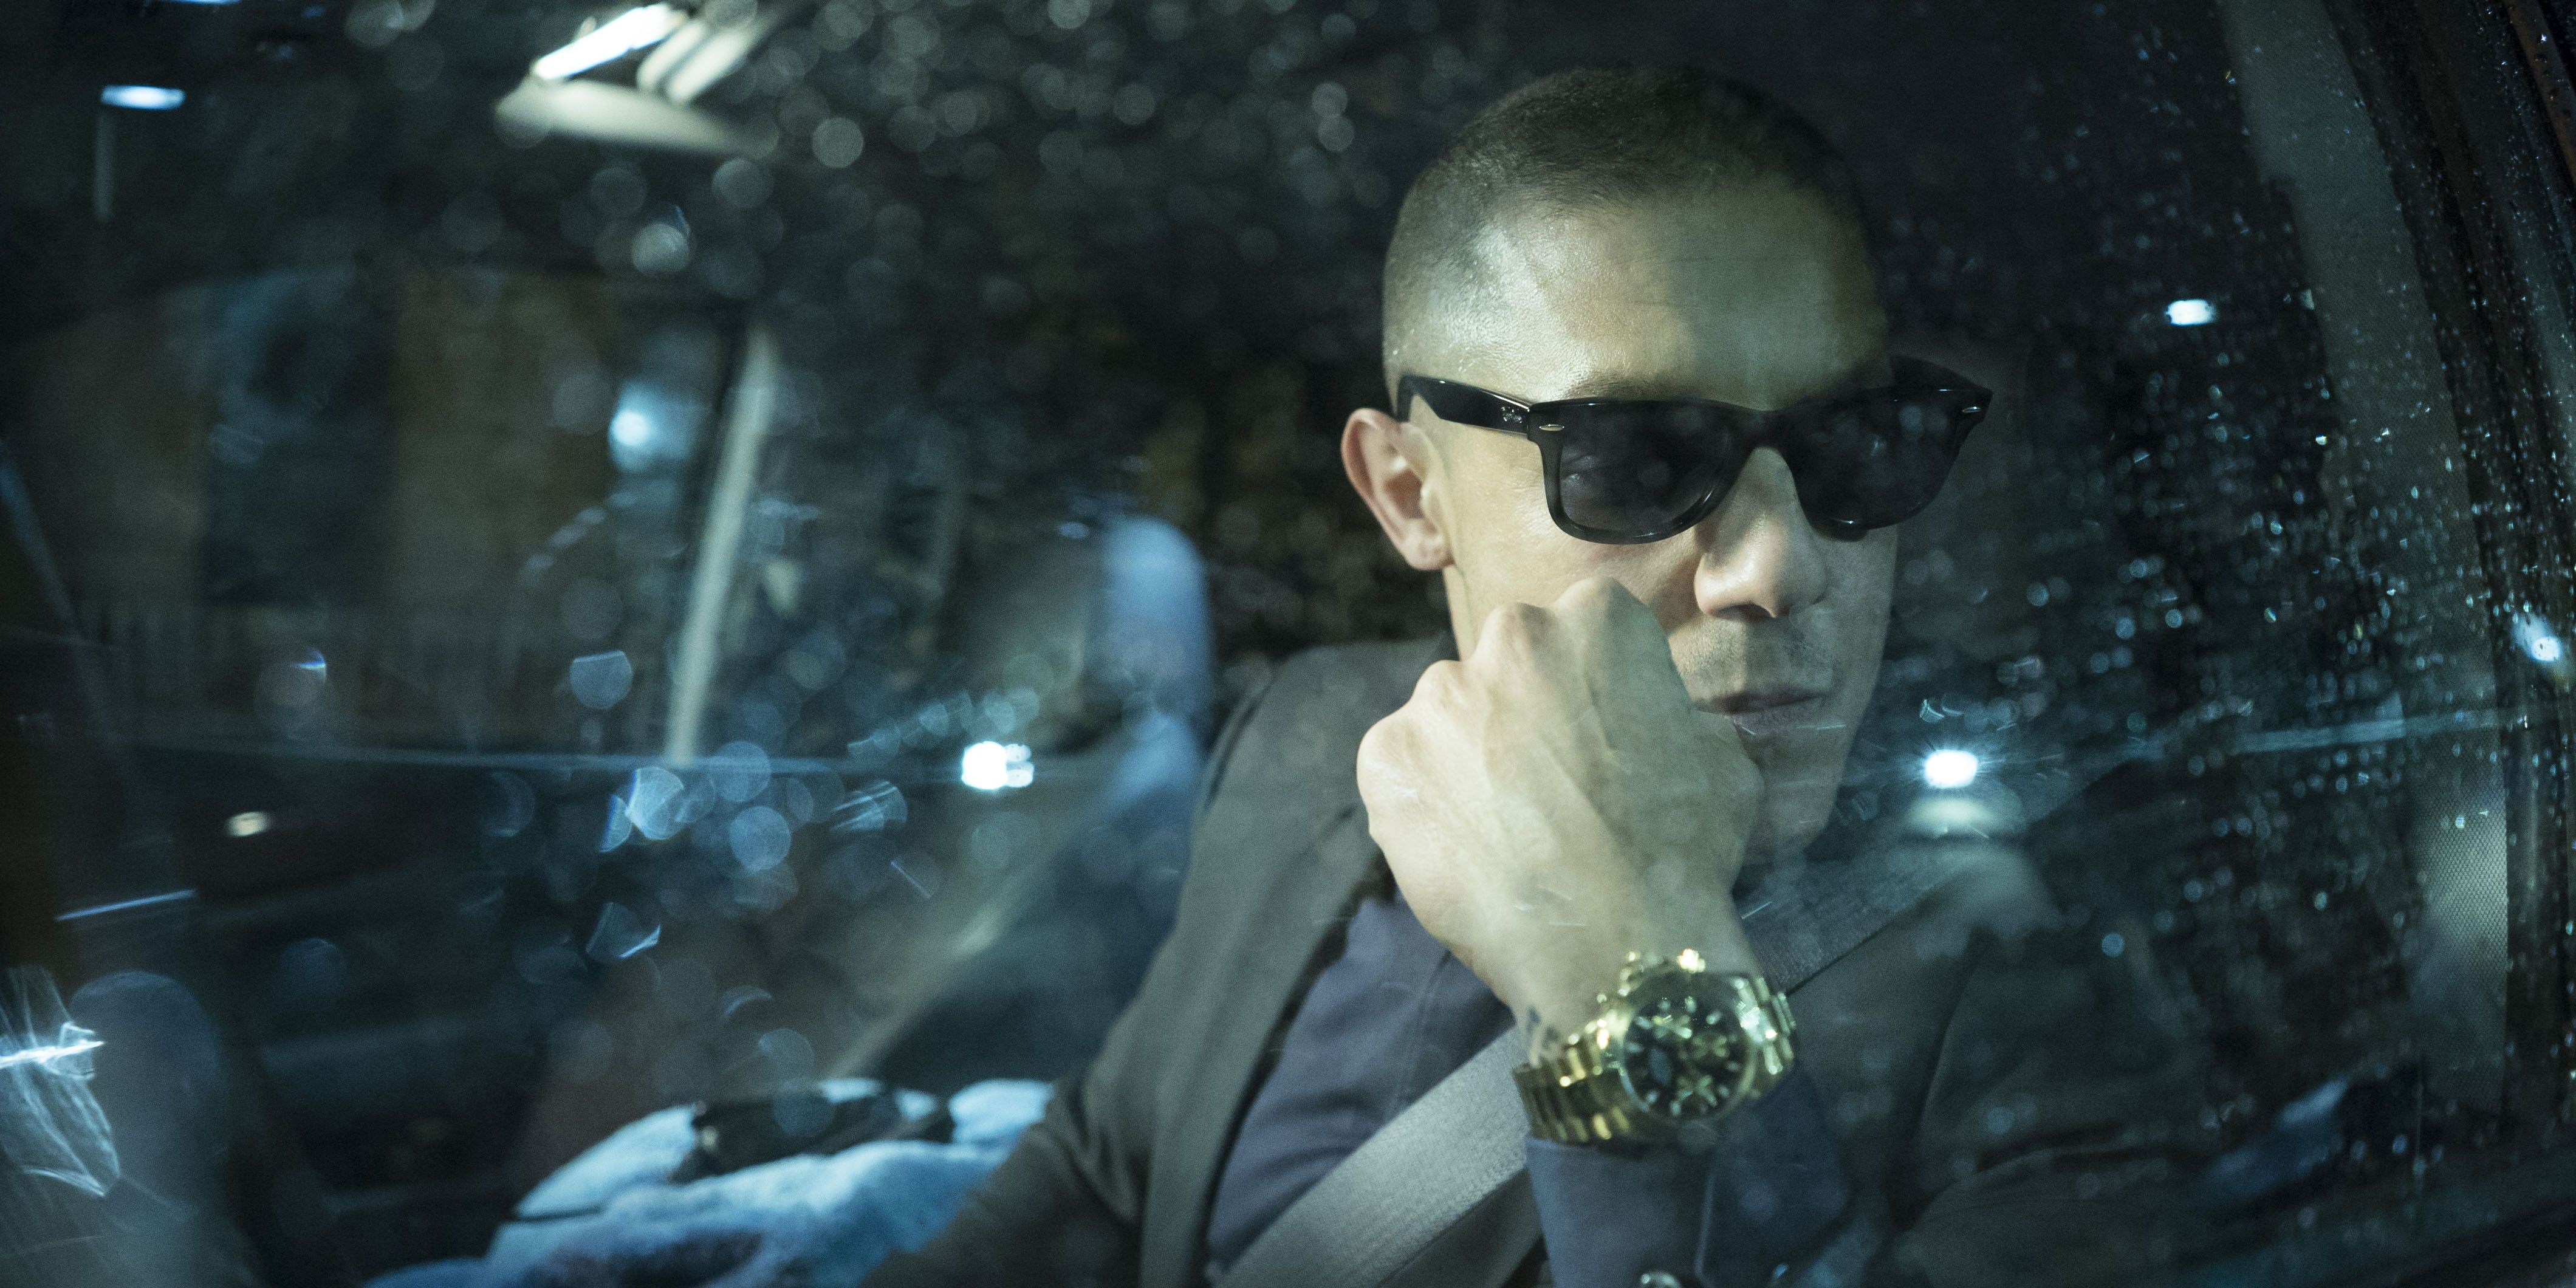 Luke Cage Actor Confirms Shades Return For Season 2 Http Www Cbr Com Luke Cage Shades Theo Rossi Theo Rossi Luke Cage Shades Luke Cage Actor